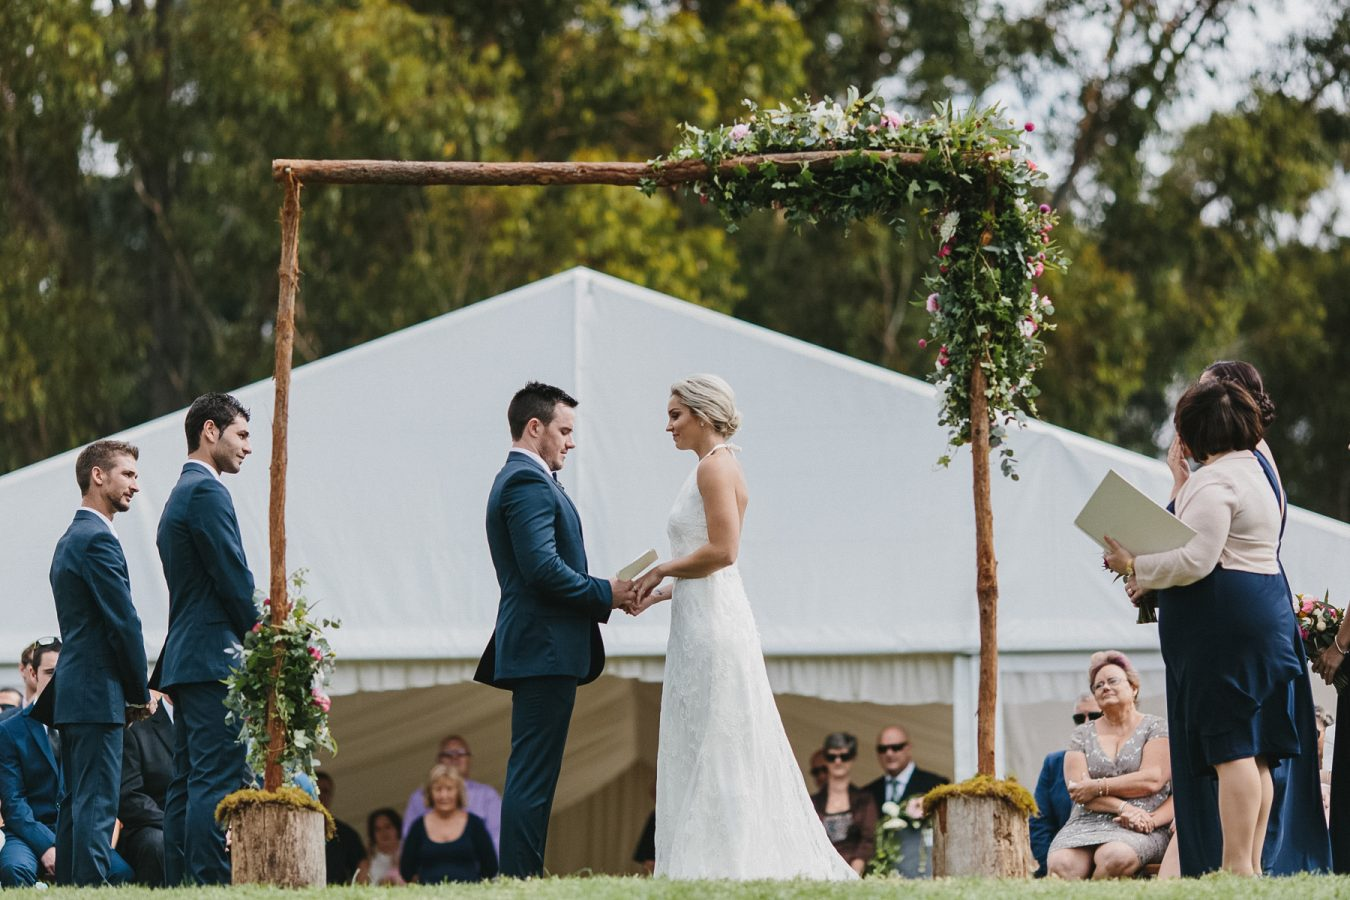 Courtney-Josh-Growwild-Bowral-southernhighlans-Wedding-49